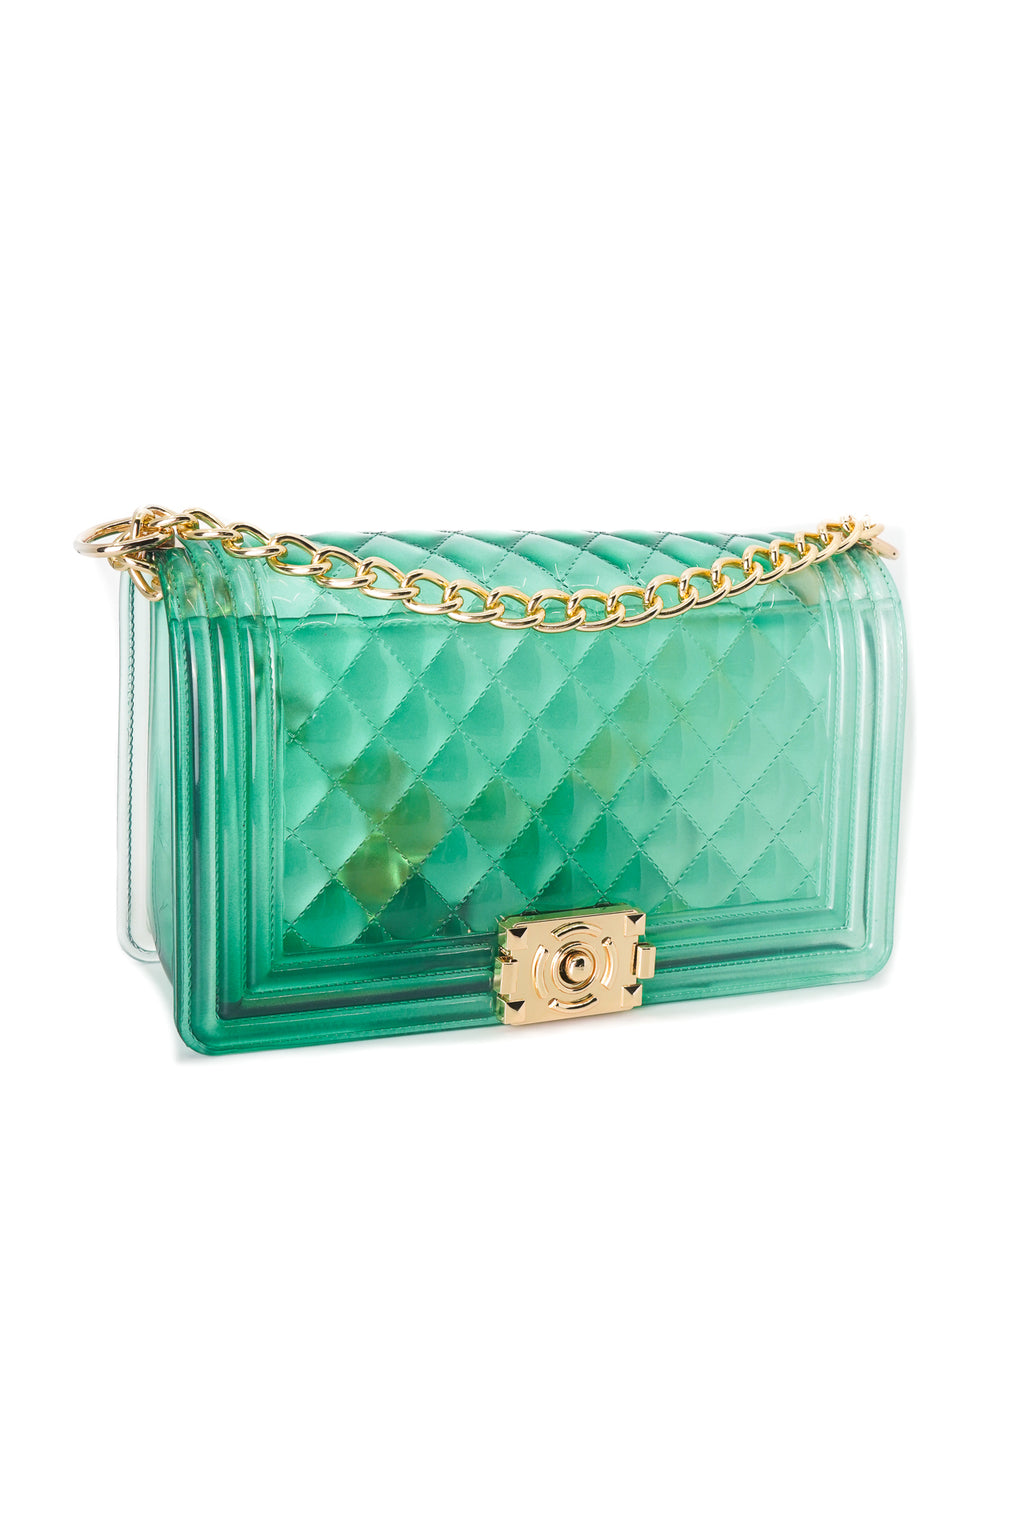 Green Clear Color Quilted Jelly Crossbody Shoulder Bag with Metal Chain Strap